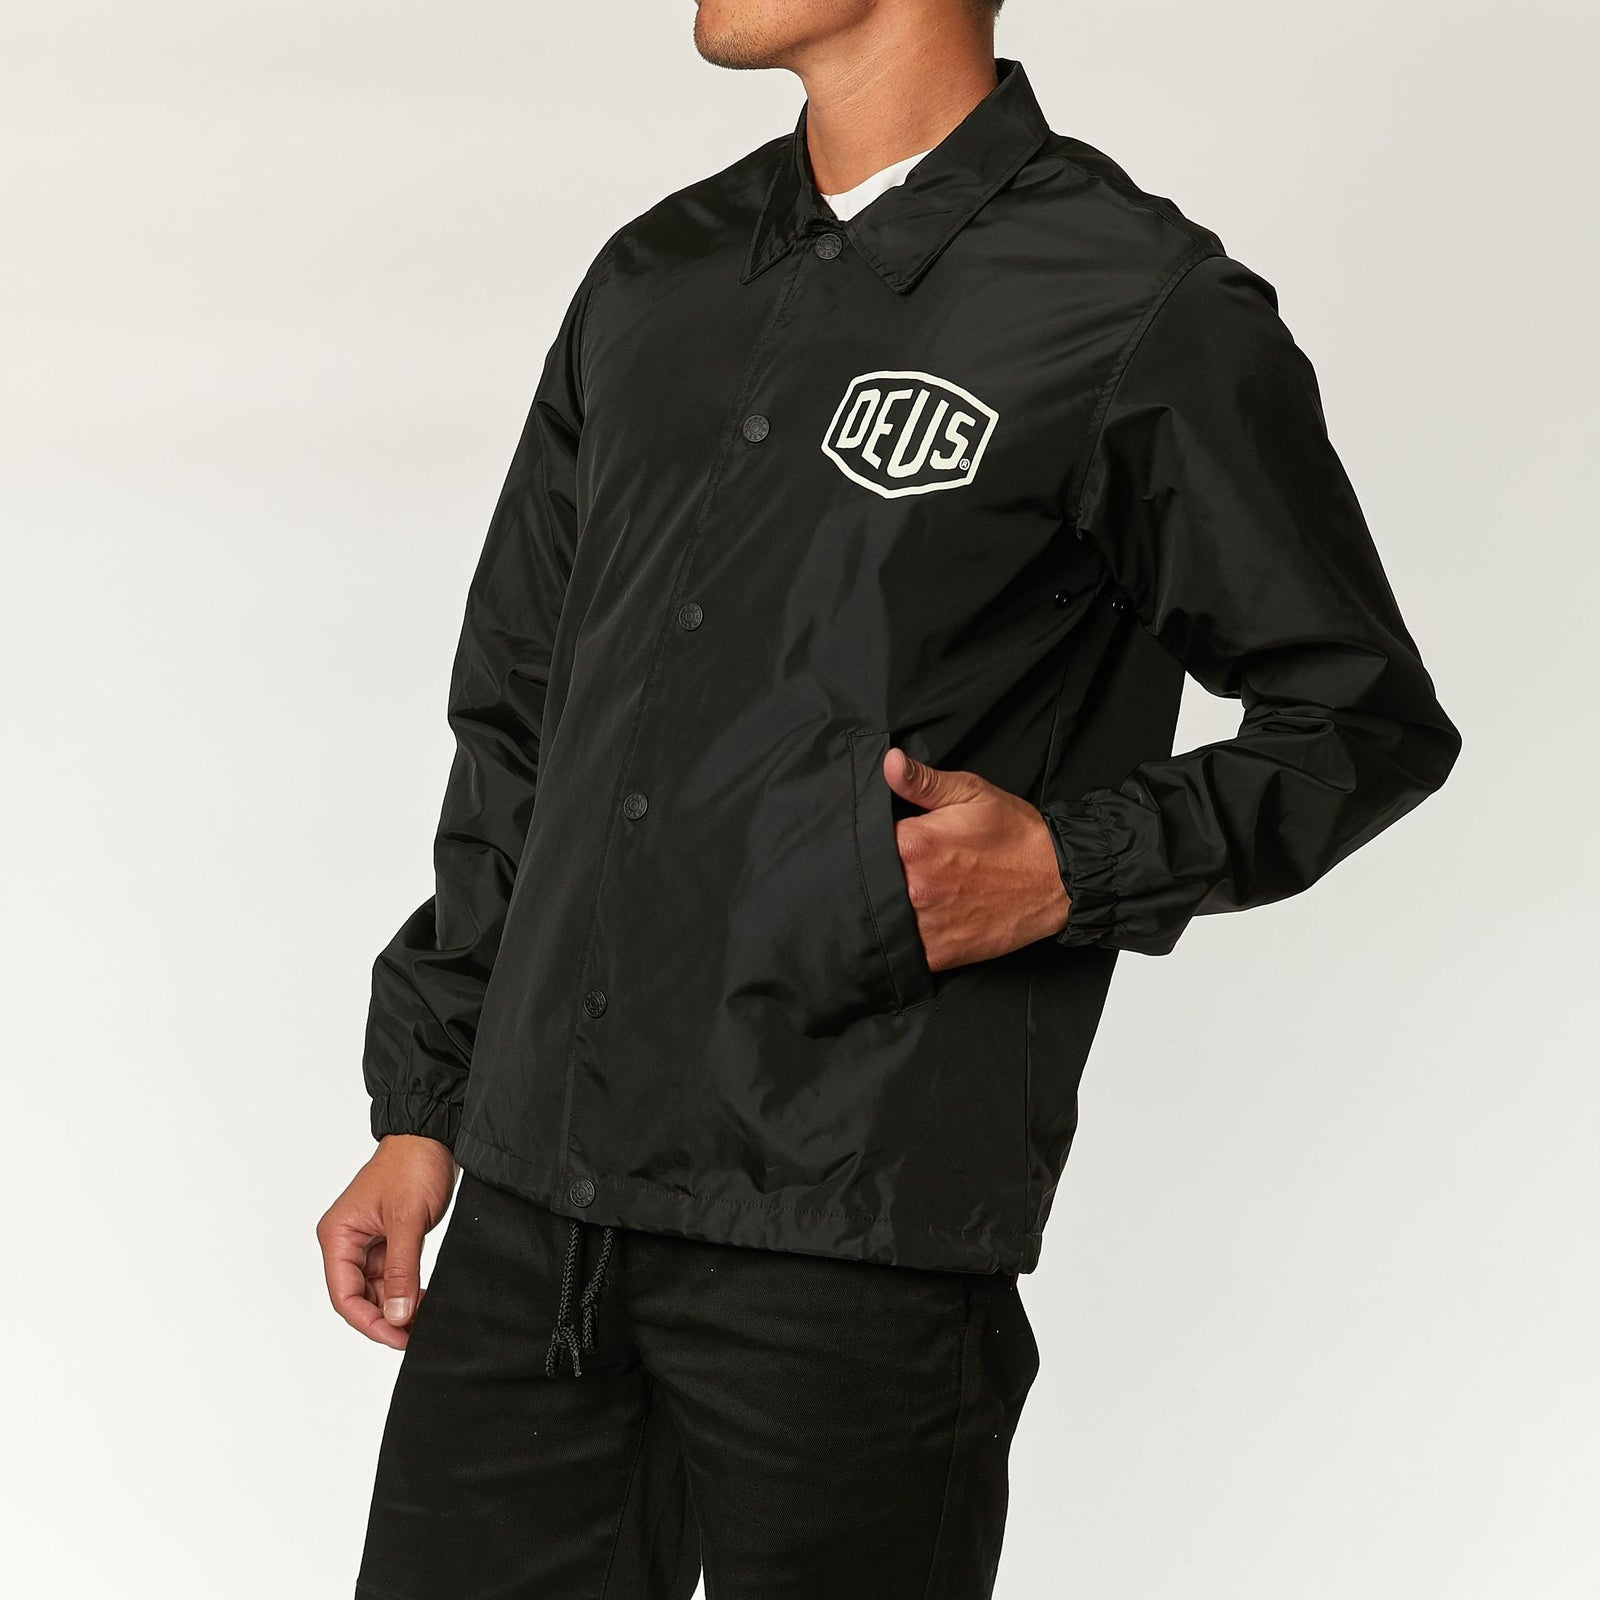 Deus Camperdown Coach Jacket Black